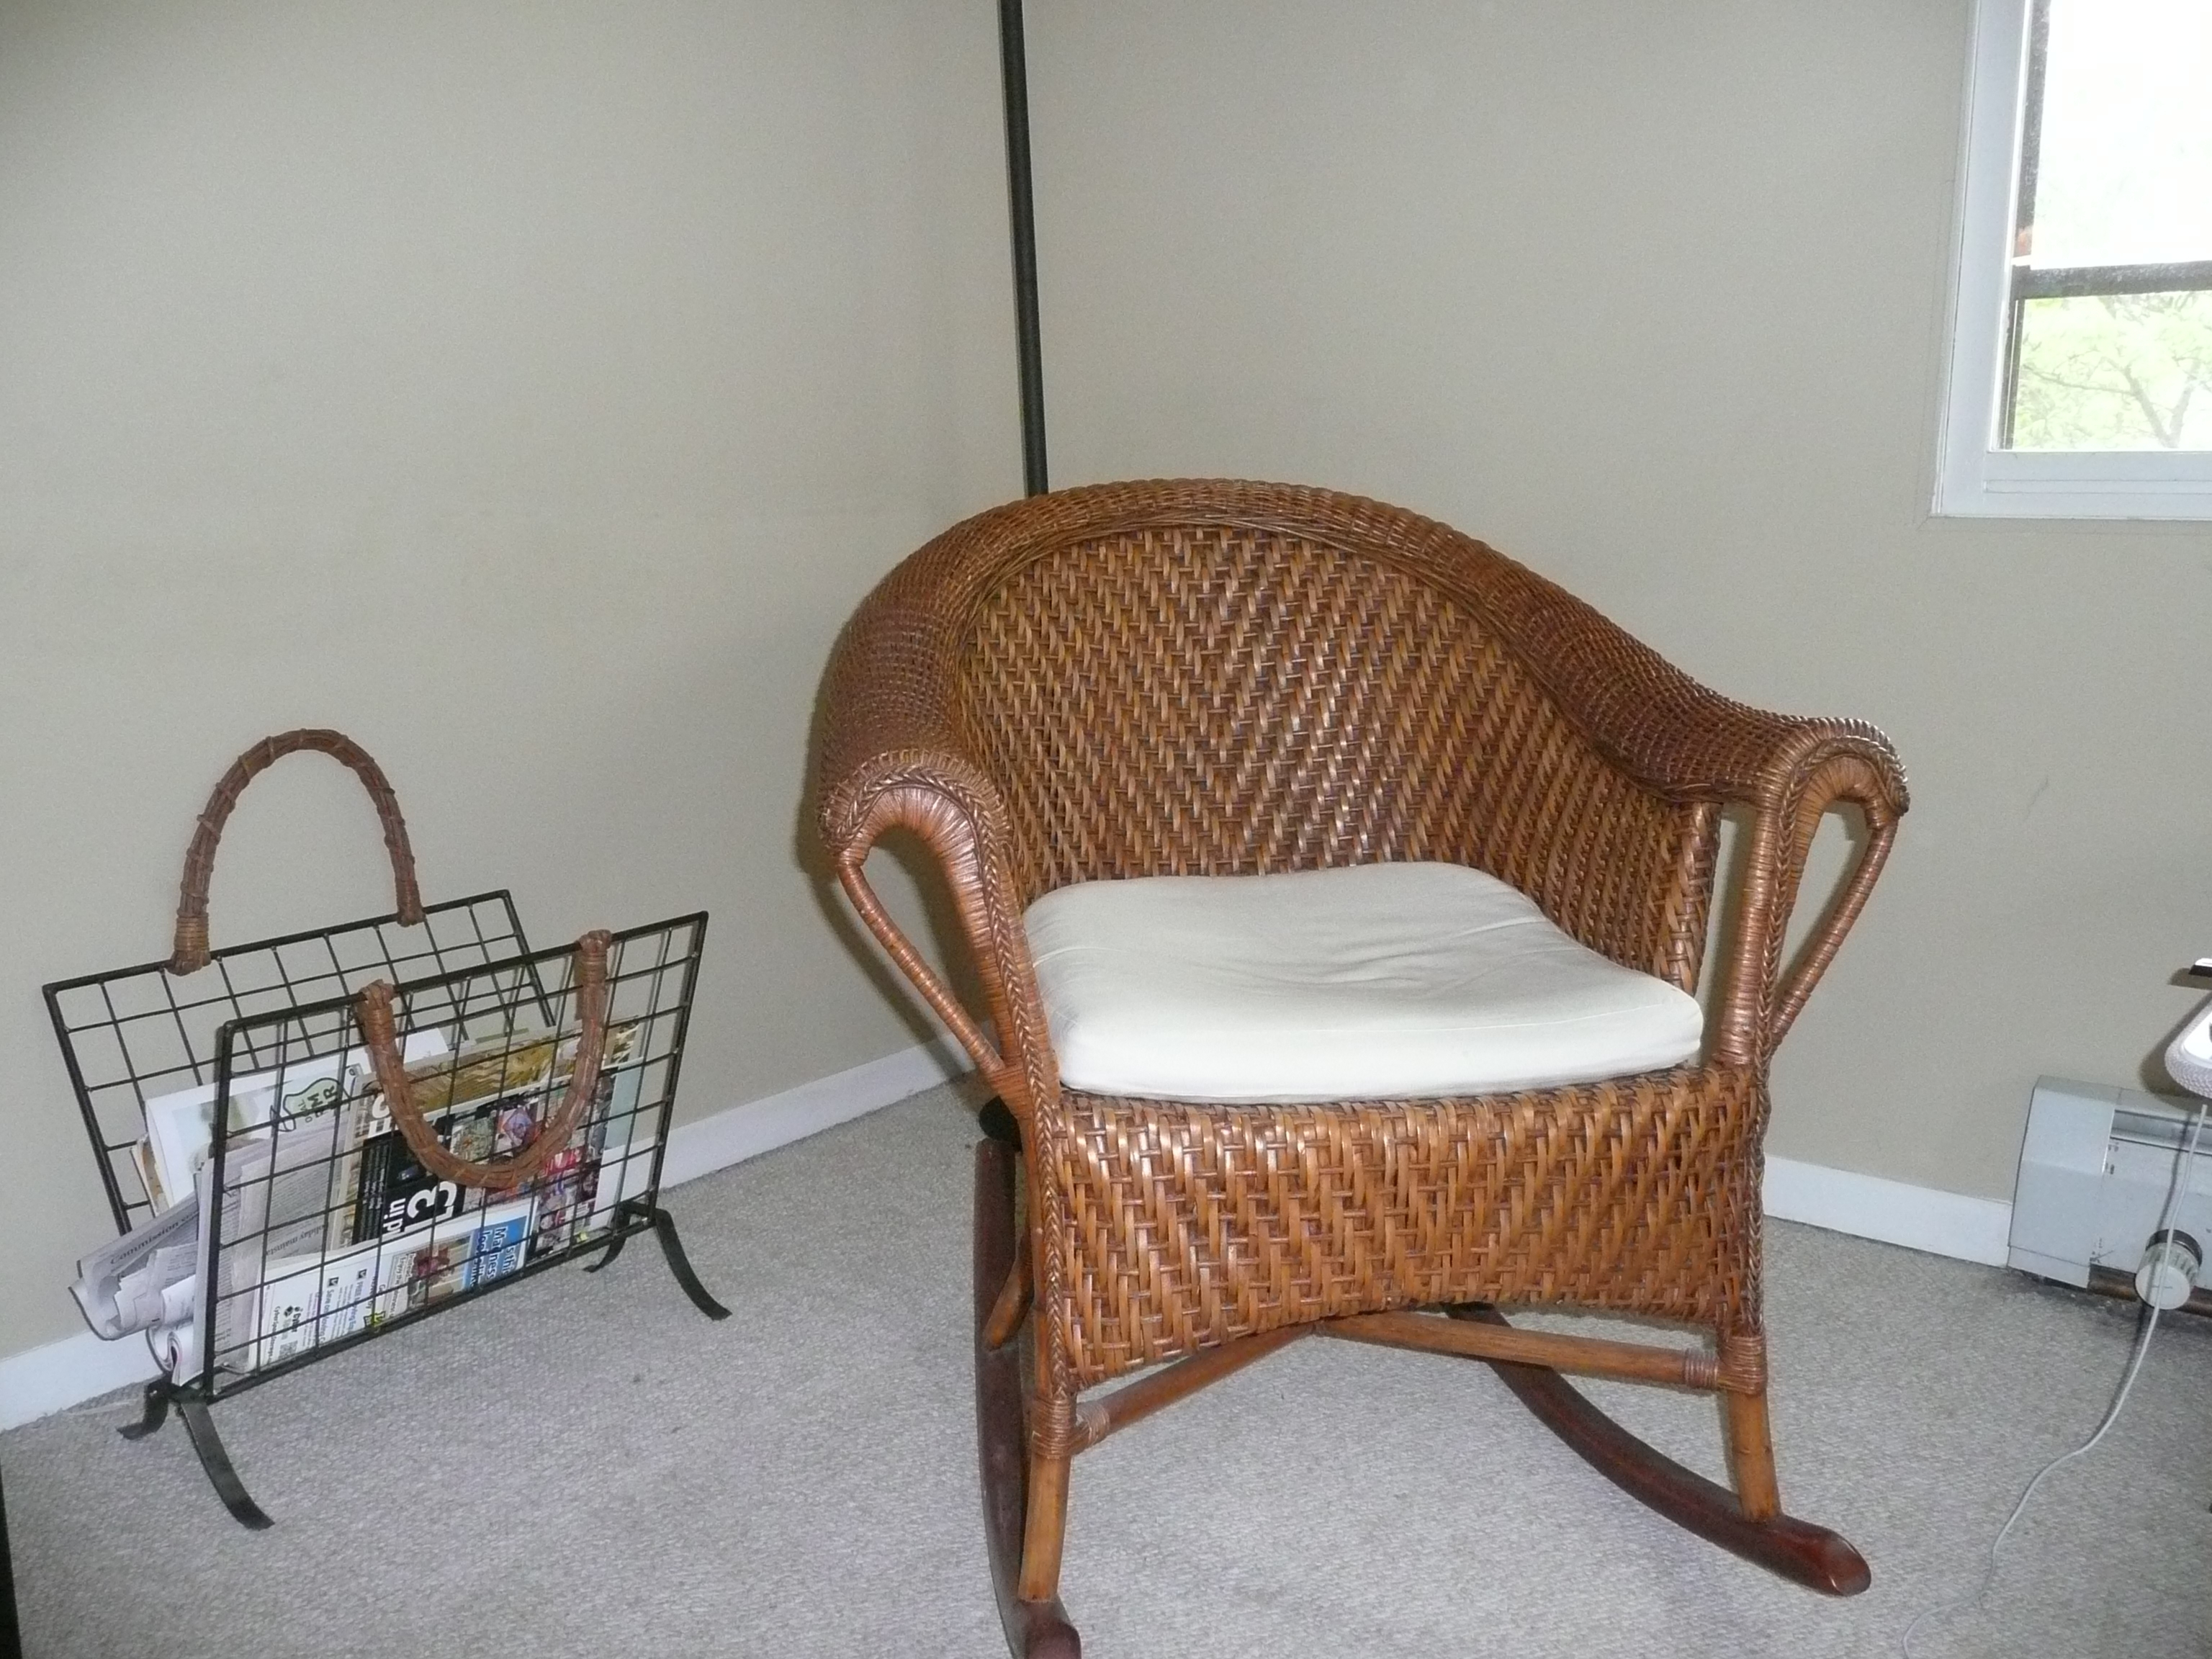 Antique Wicker Rocking Chair With Springs | Best Home Chair Decoration Within Antique Wicker Rocking Chairs With Springs (#9 of 15)